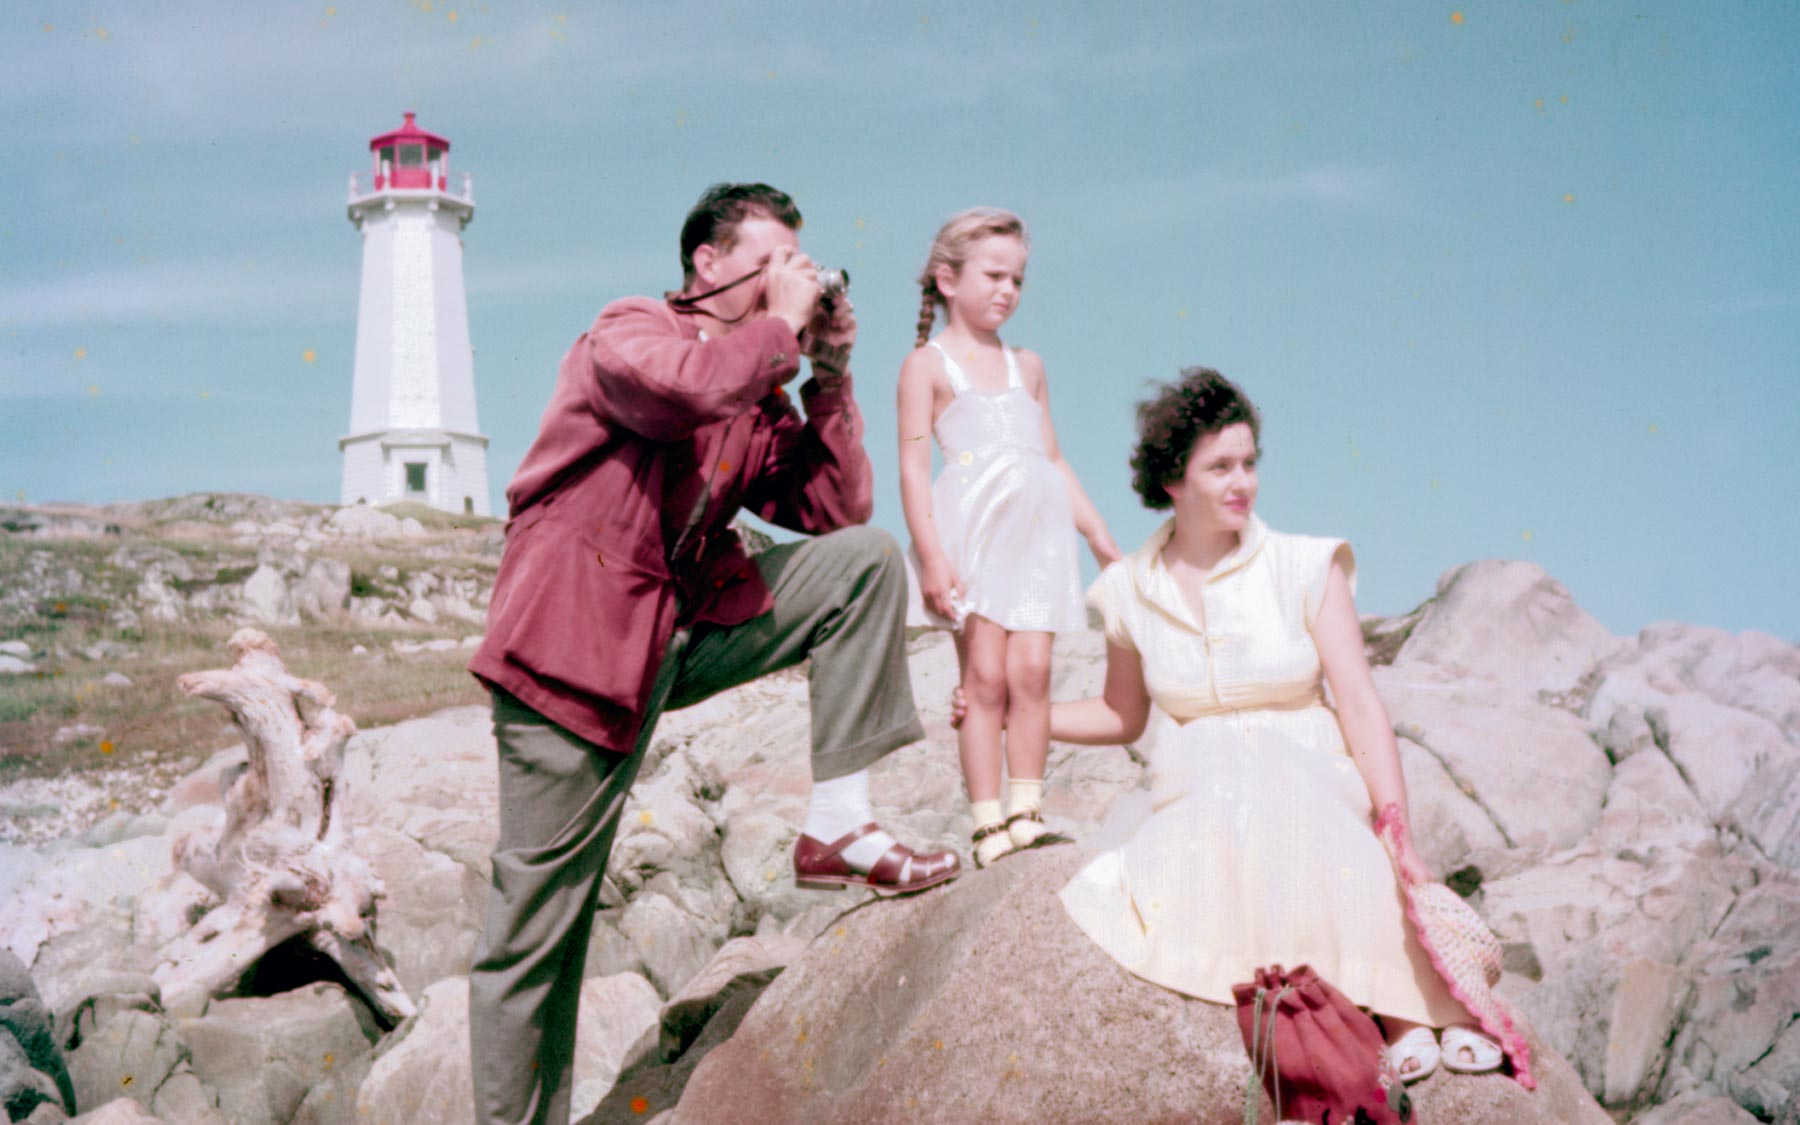 In front of the Fortress of Louisbourg, National Historic Site in Nova Scotia, 1952.